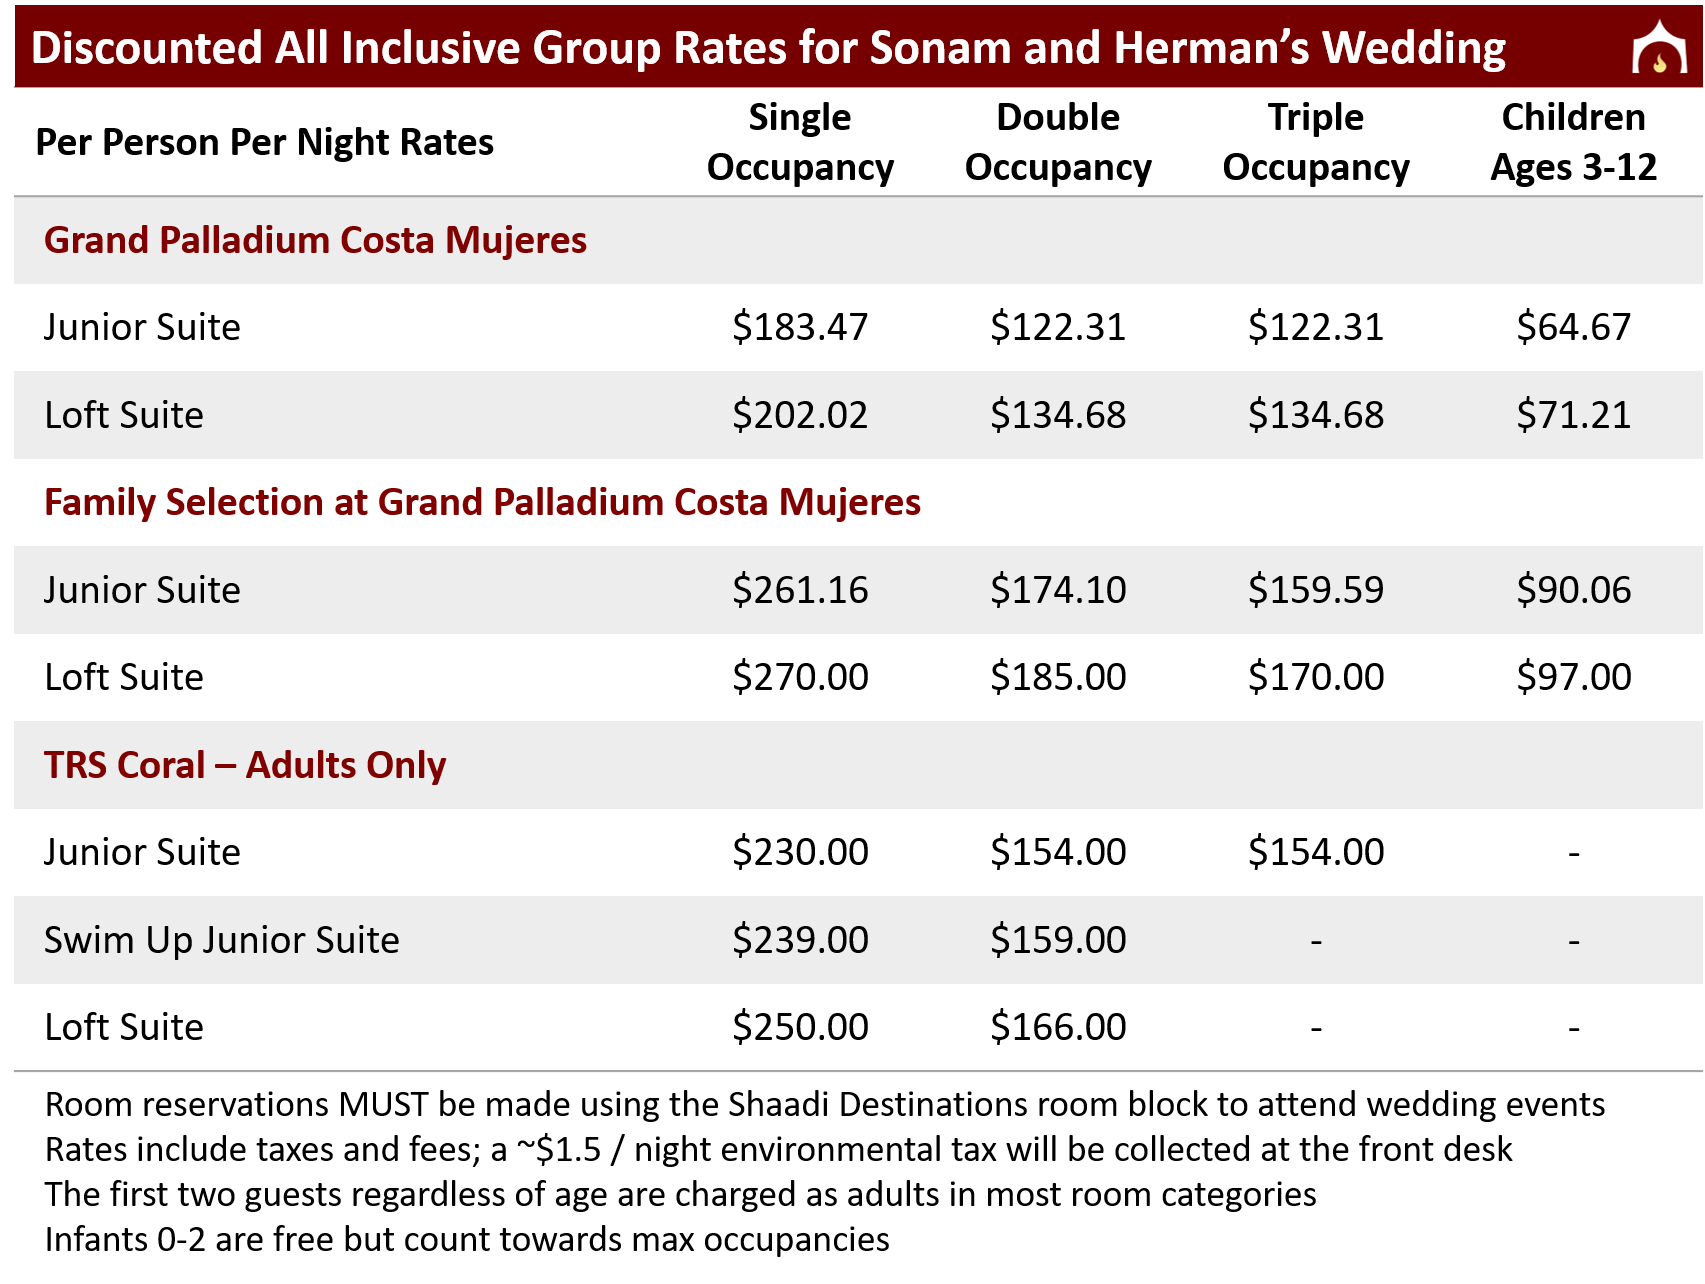 Sonam and Herman Rates Family.png